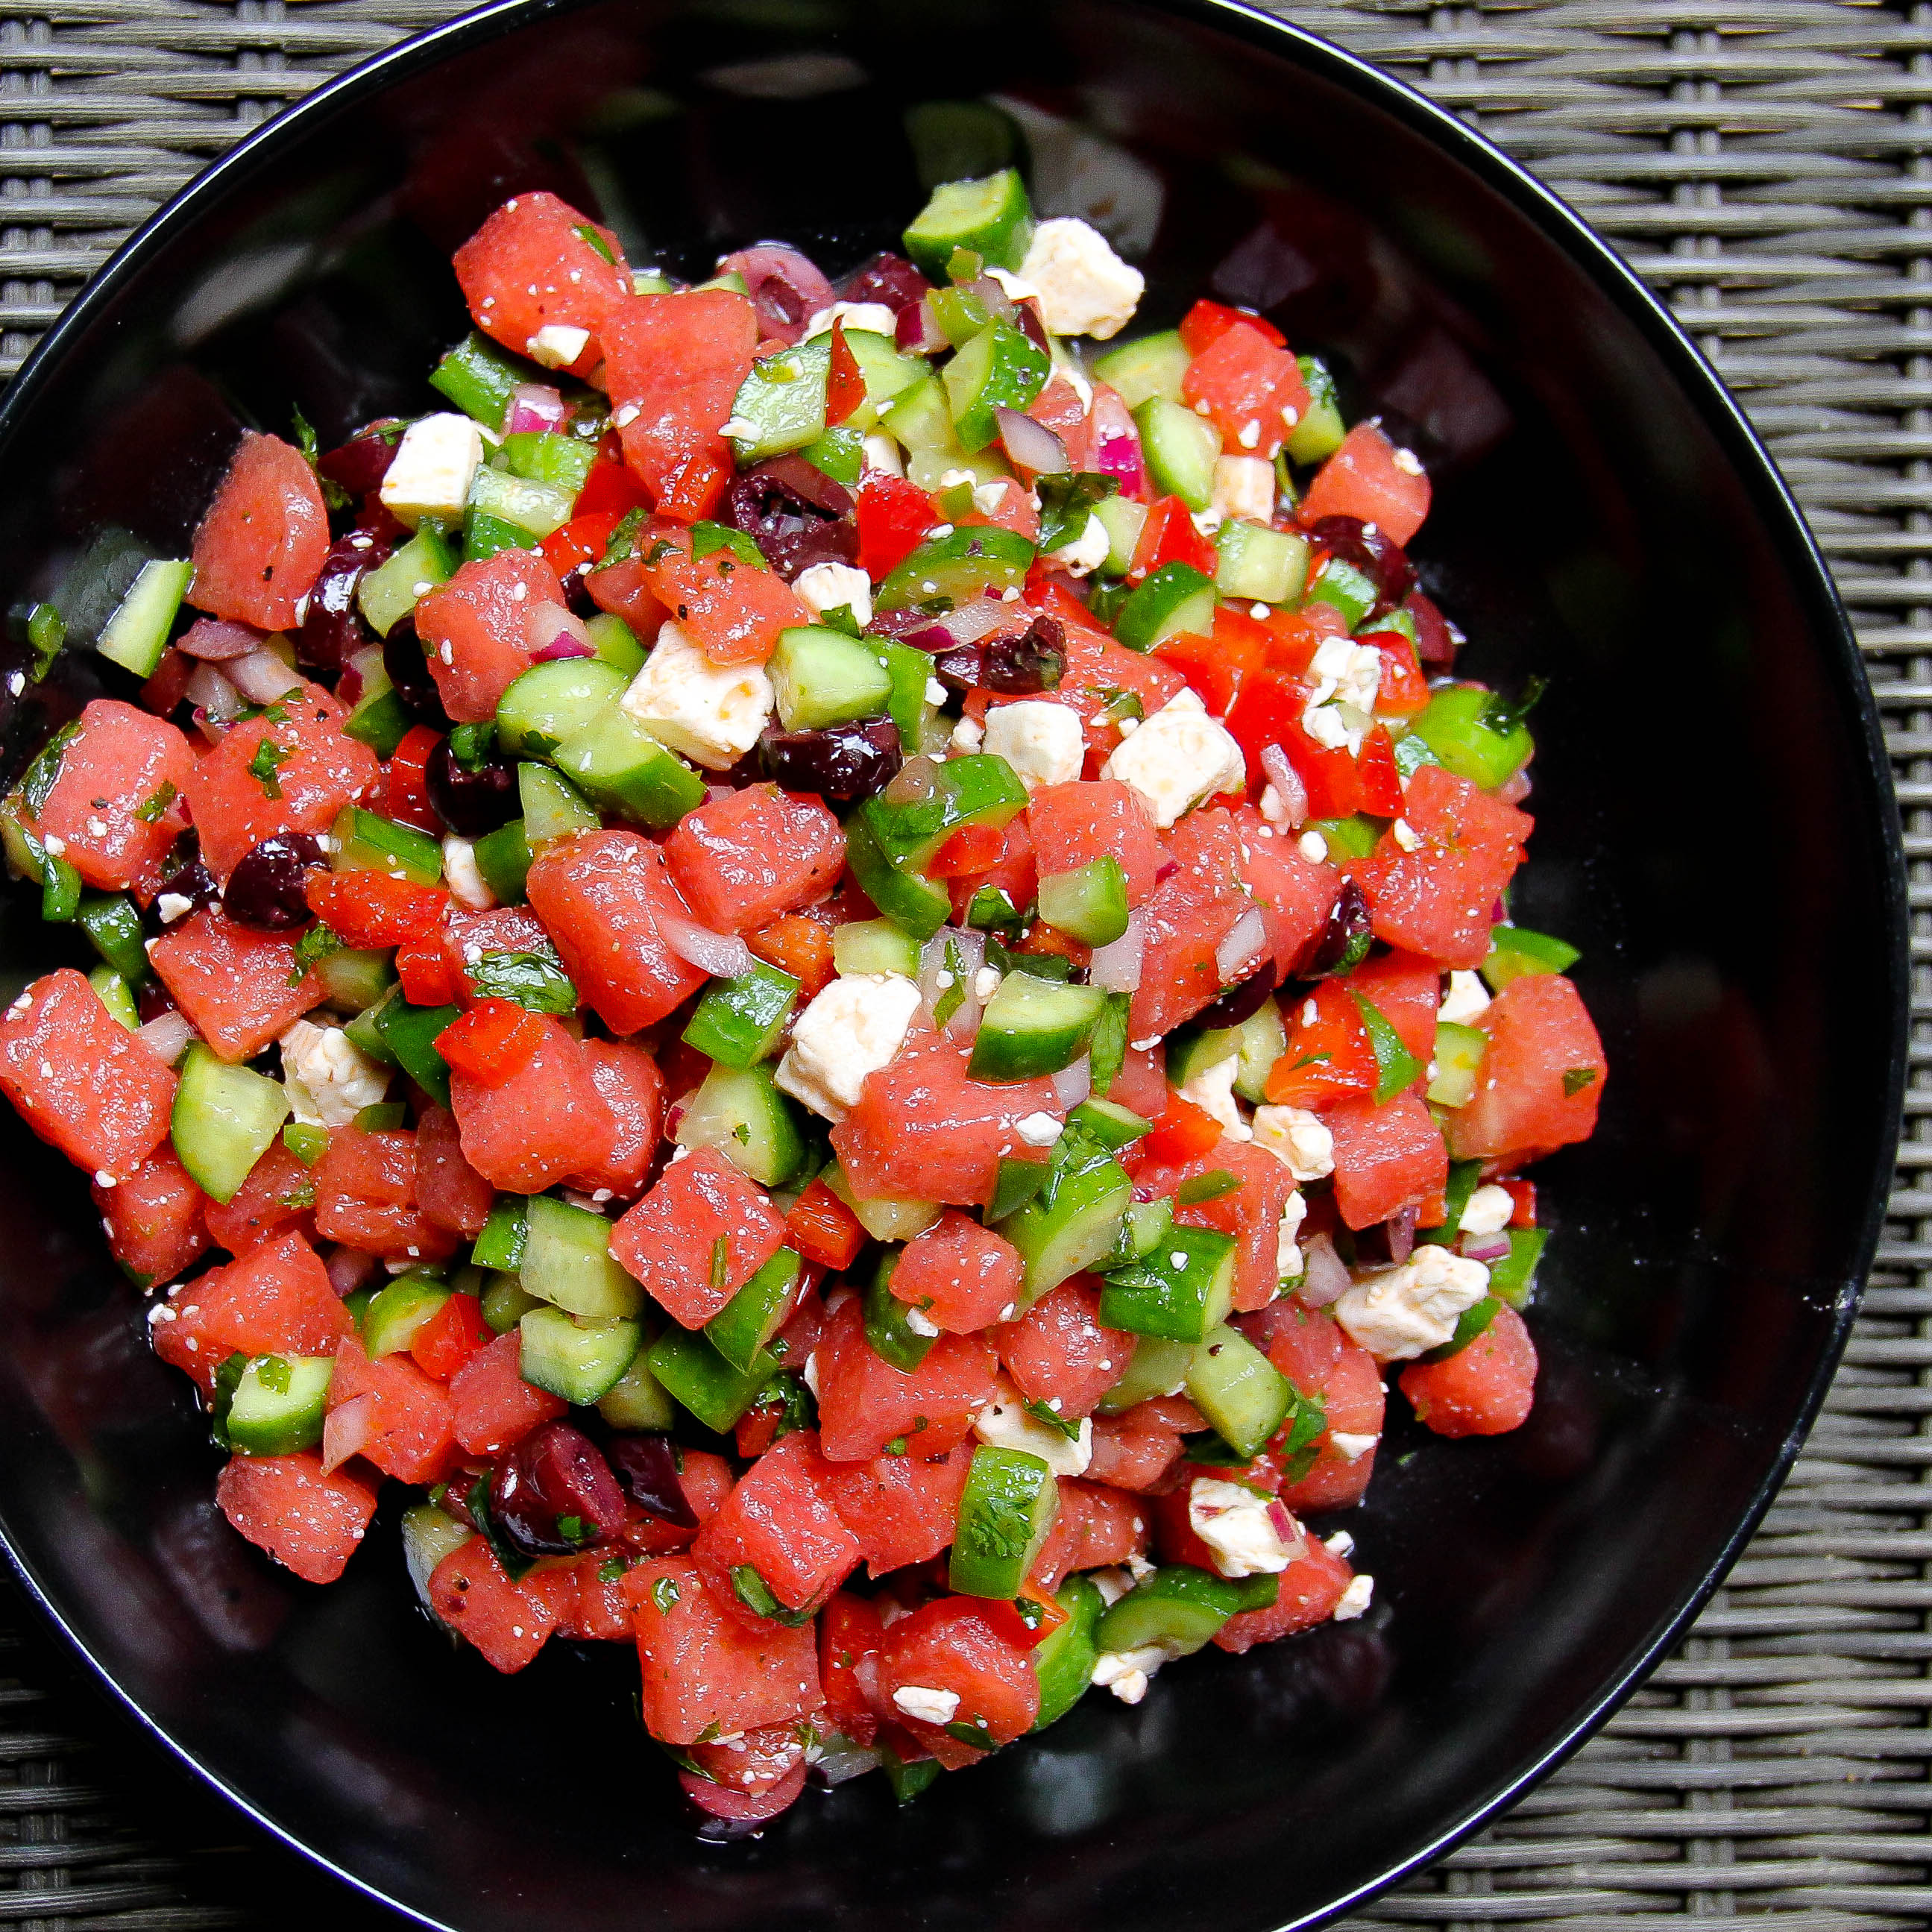 Watermelon Salad with Cucumbers, Olives and Feta